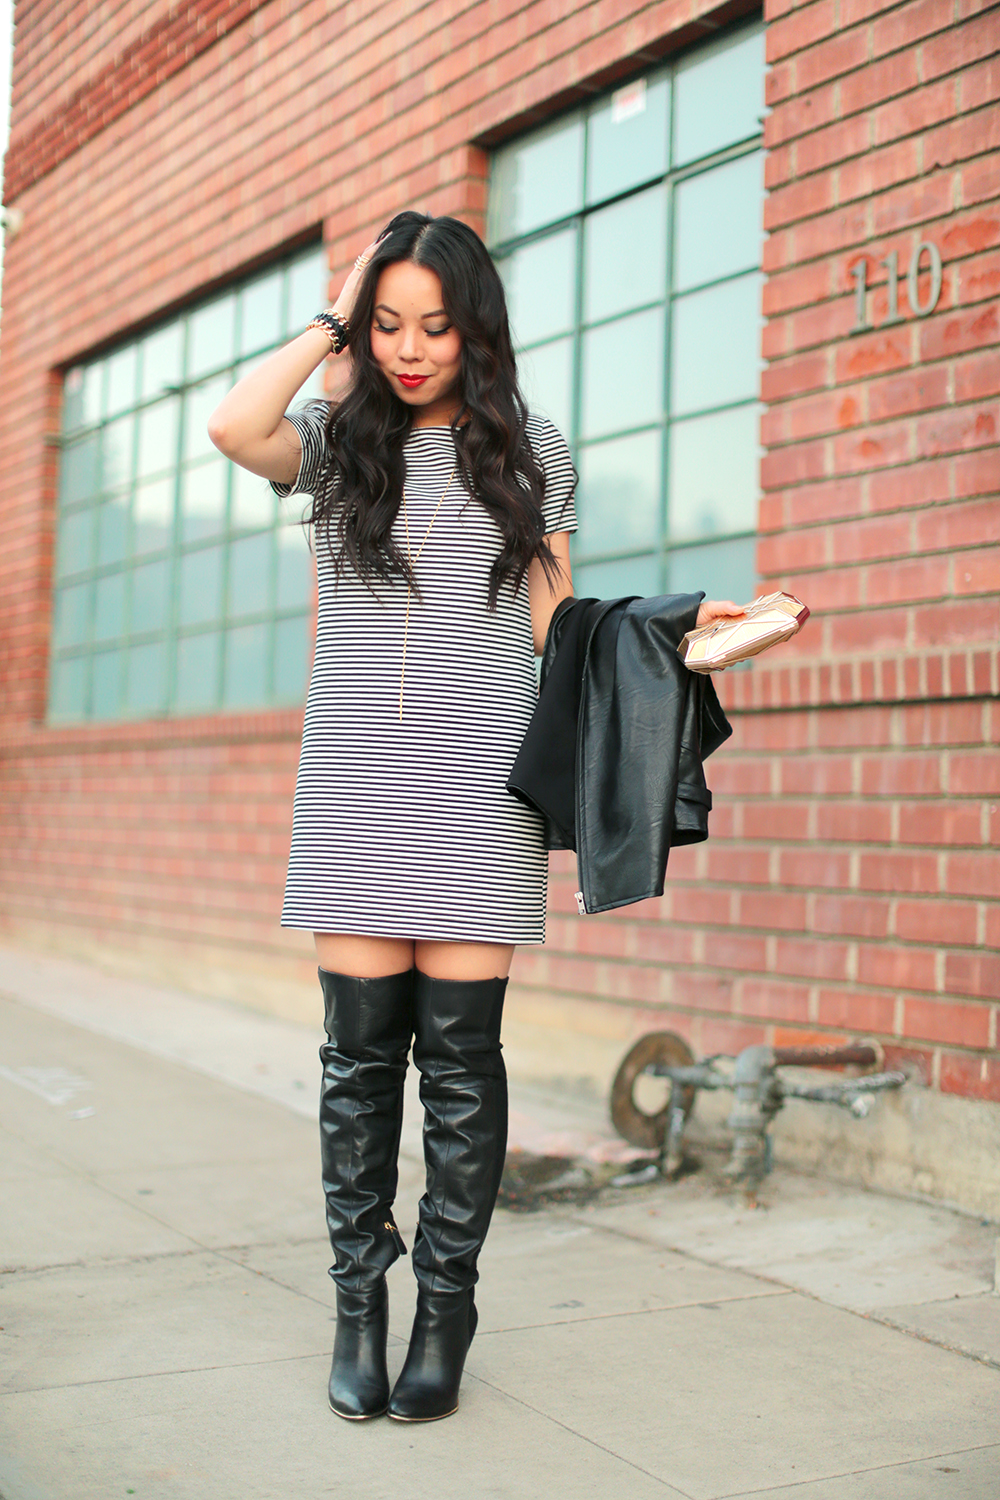 How To Wear Over The Knee Boots Casually  Glamorousheelscom-5043